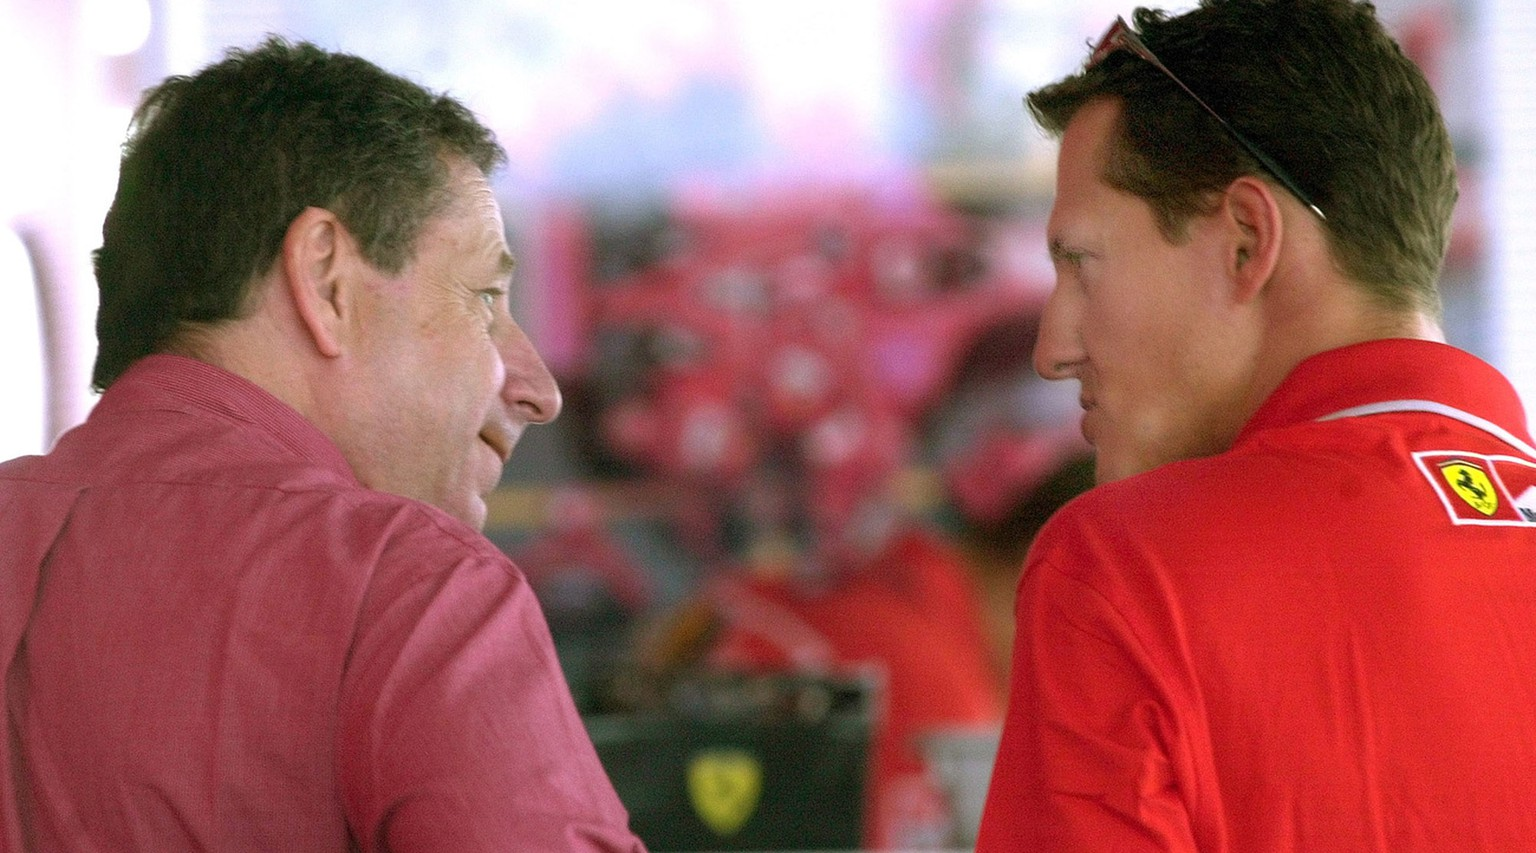 Germany's Michael Schumacher, right, talks to Ferrari team manager Jean Todt in Budapest, Thursday Aug. 16, 2001, prior to Sunday's Hungarian Grand Prix. Schumacher needs to take three points in the race to clinch his fourth World championship. (KEYSTONE/AP Photo/Darko Vojinovic)